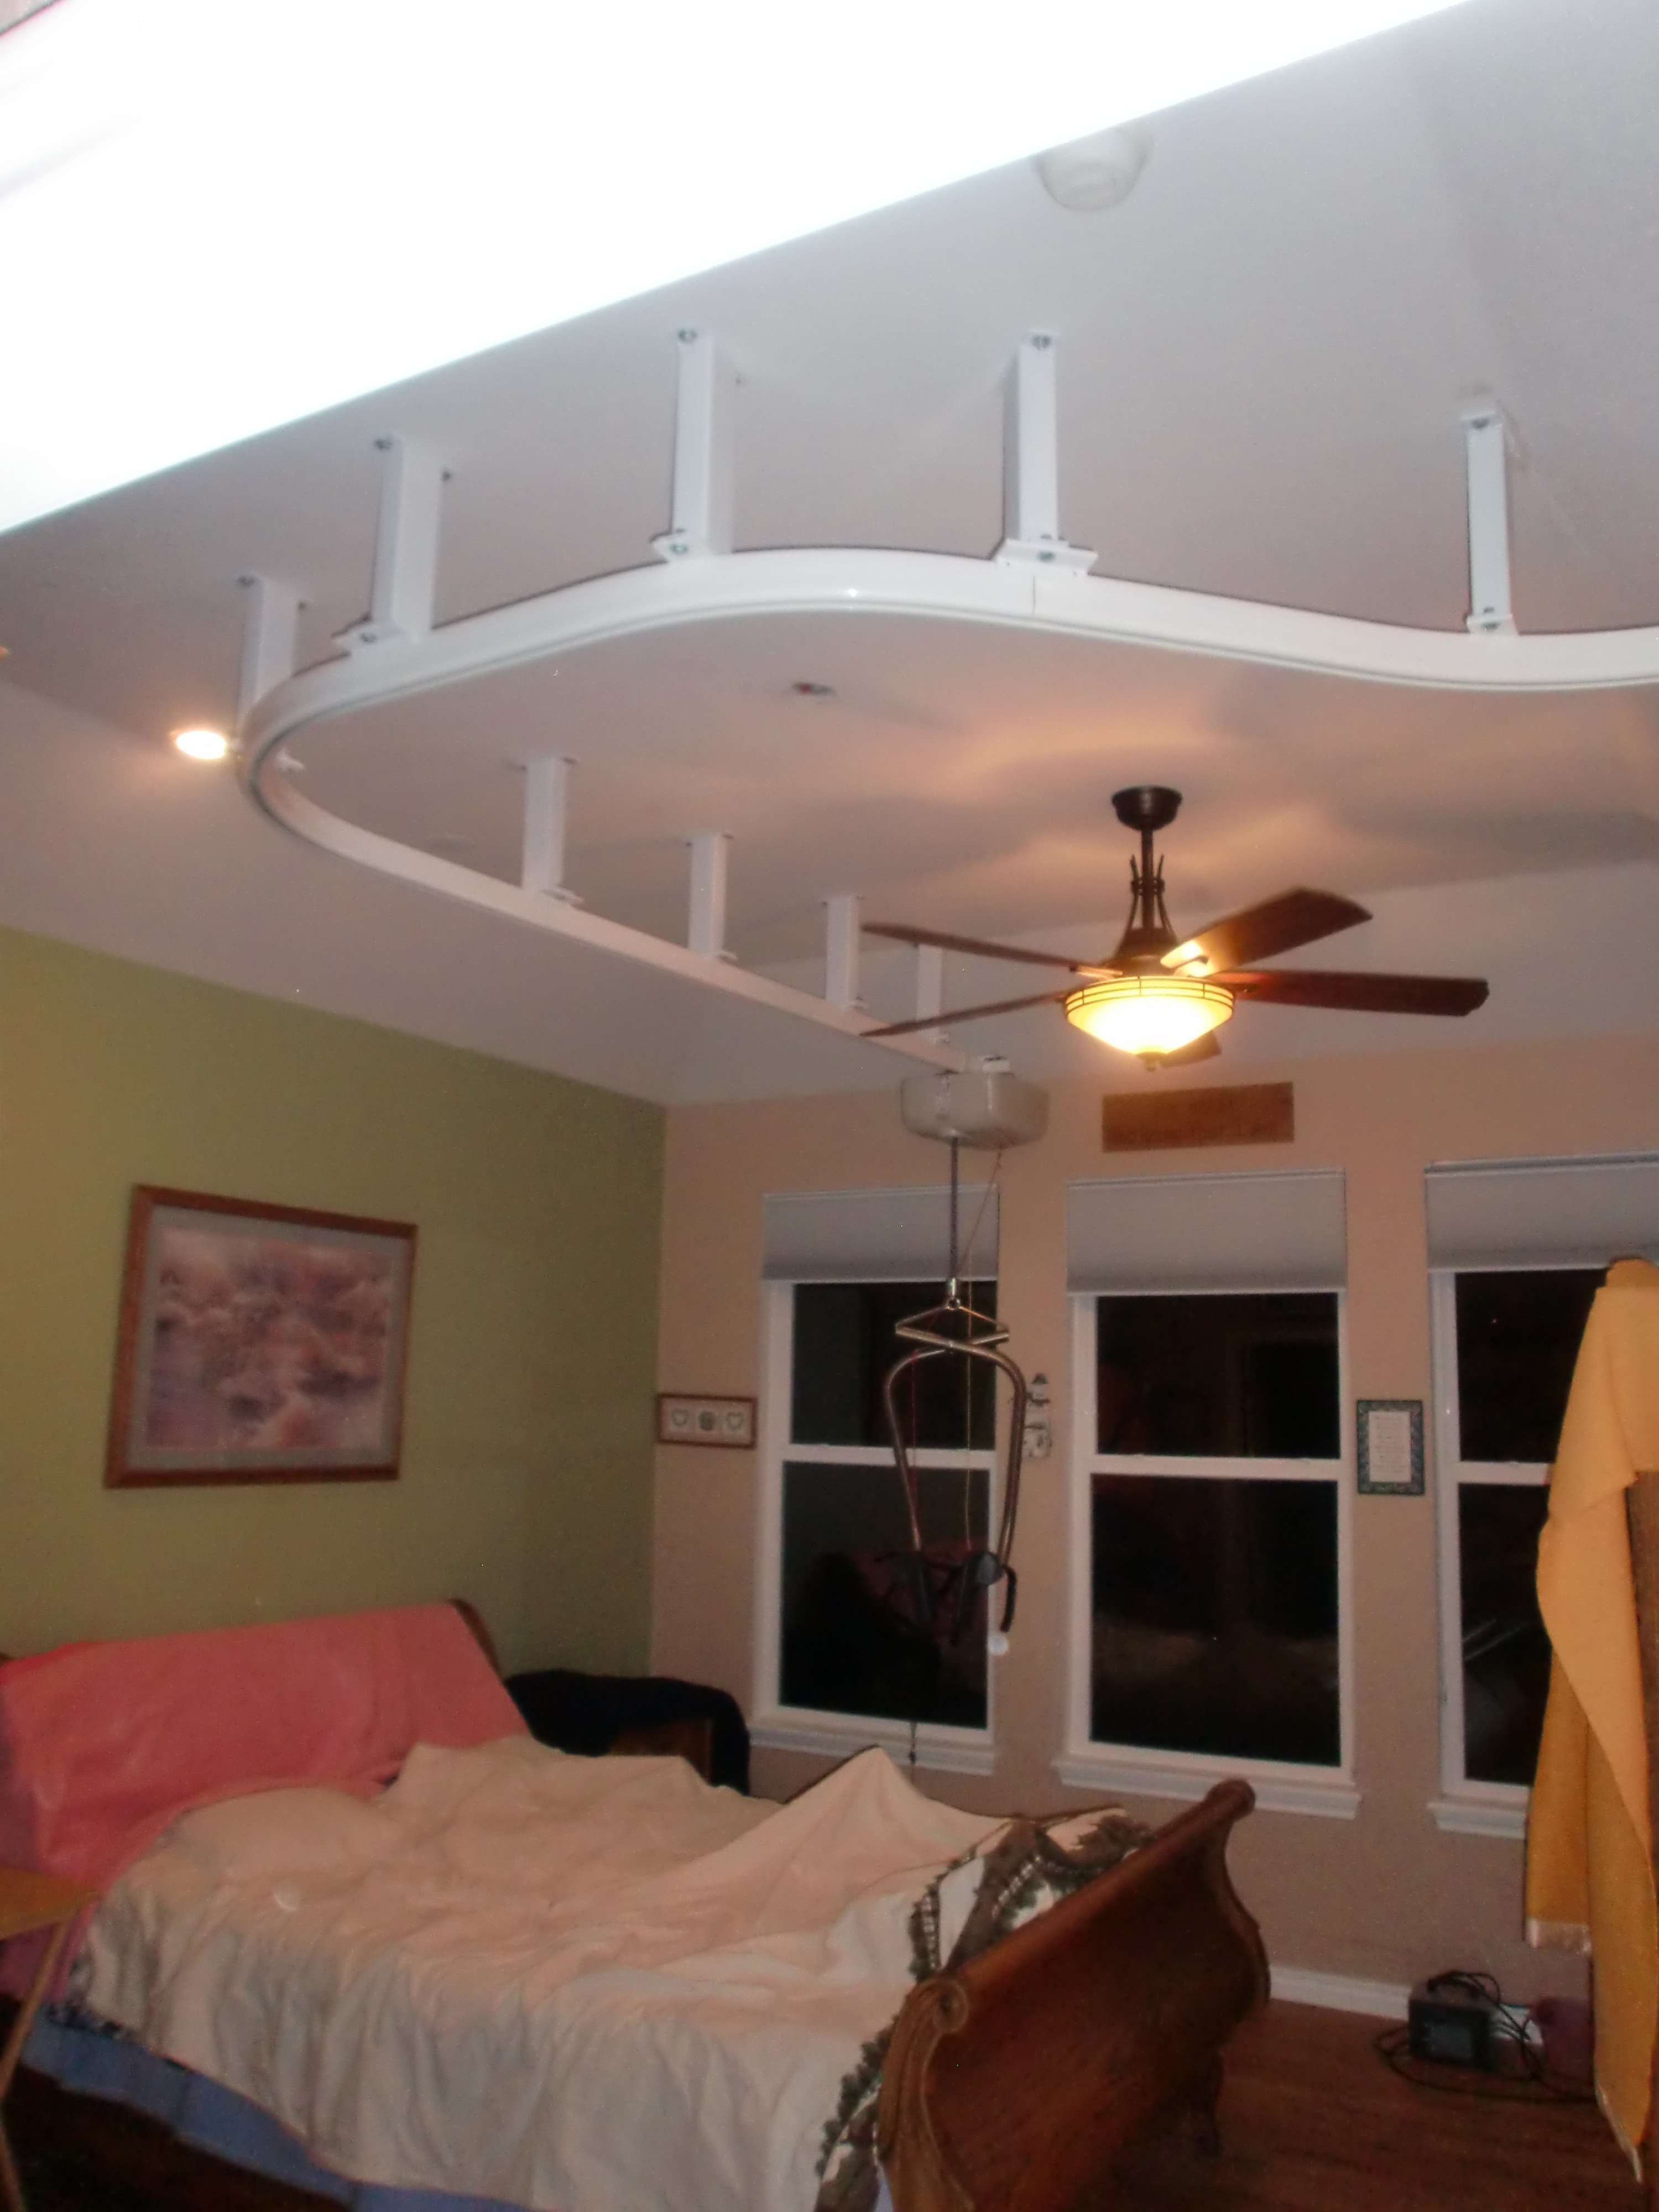 Best Suspended Ceiling Lift Goes From Bedroom To Bathroom In With Pictures